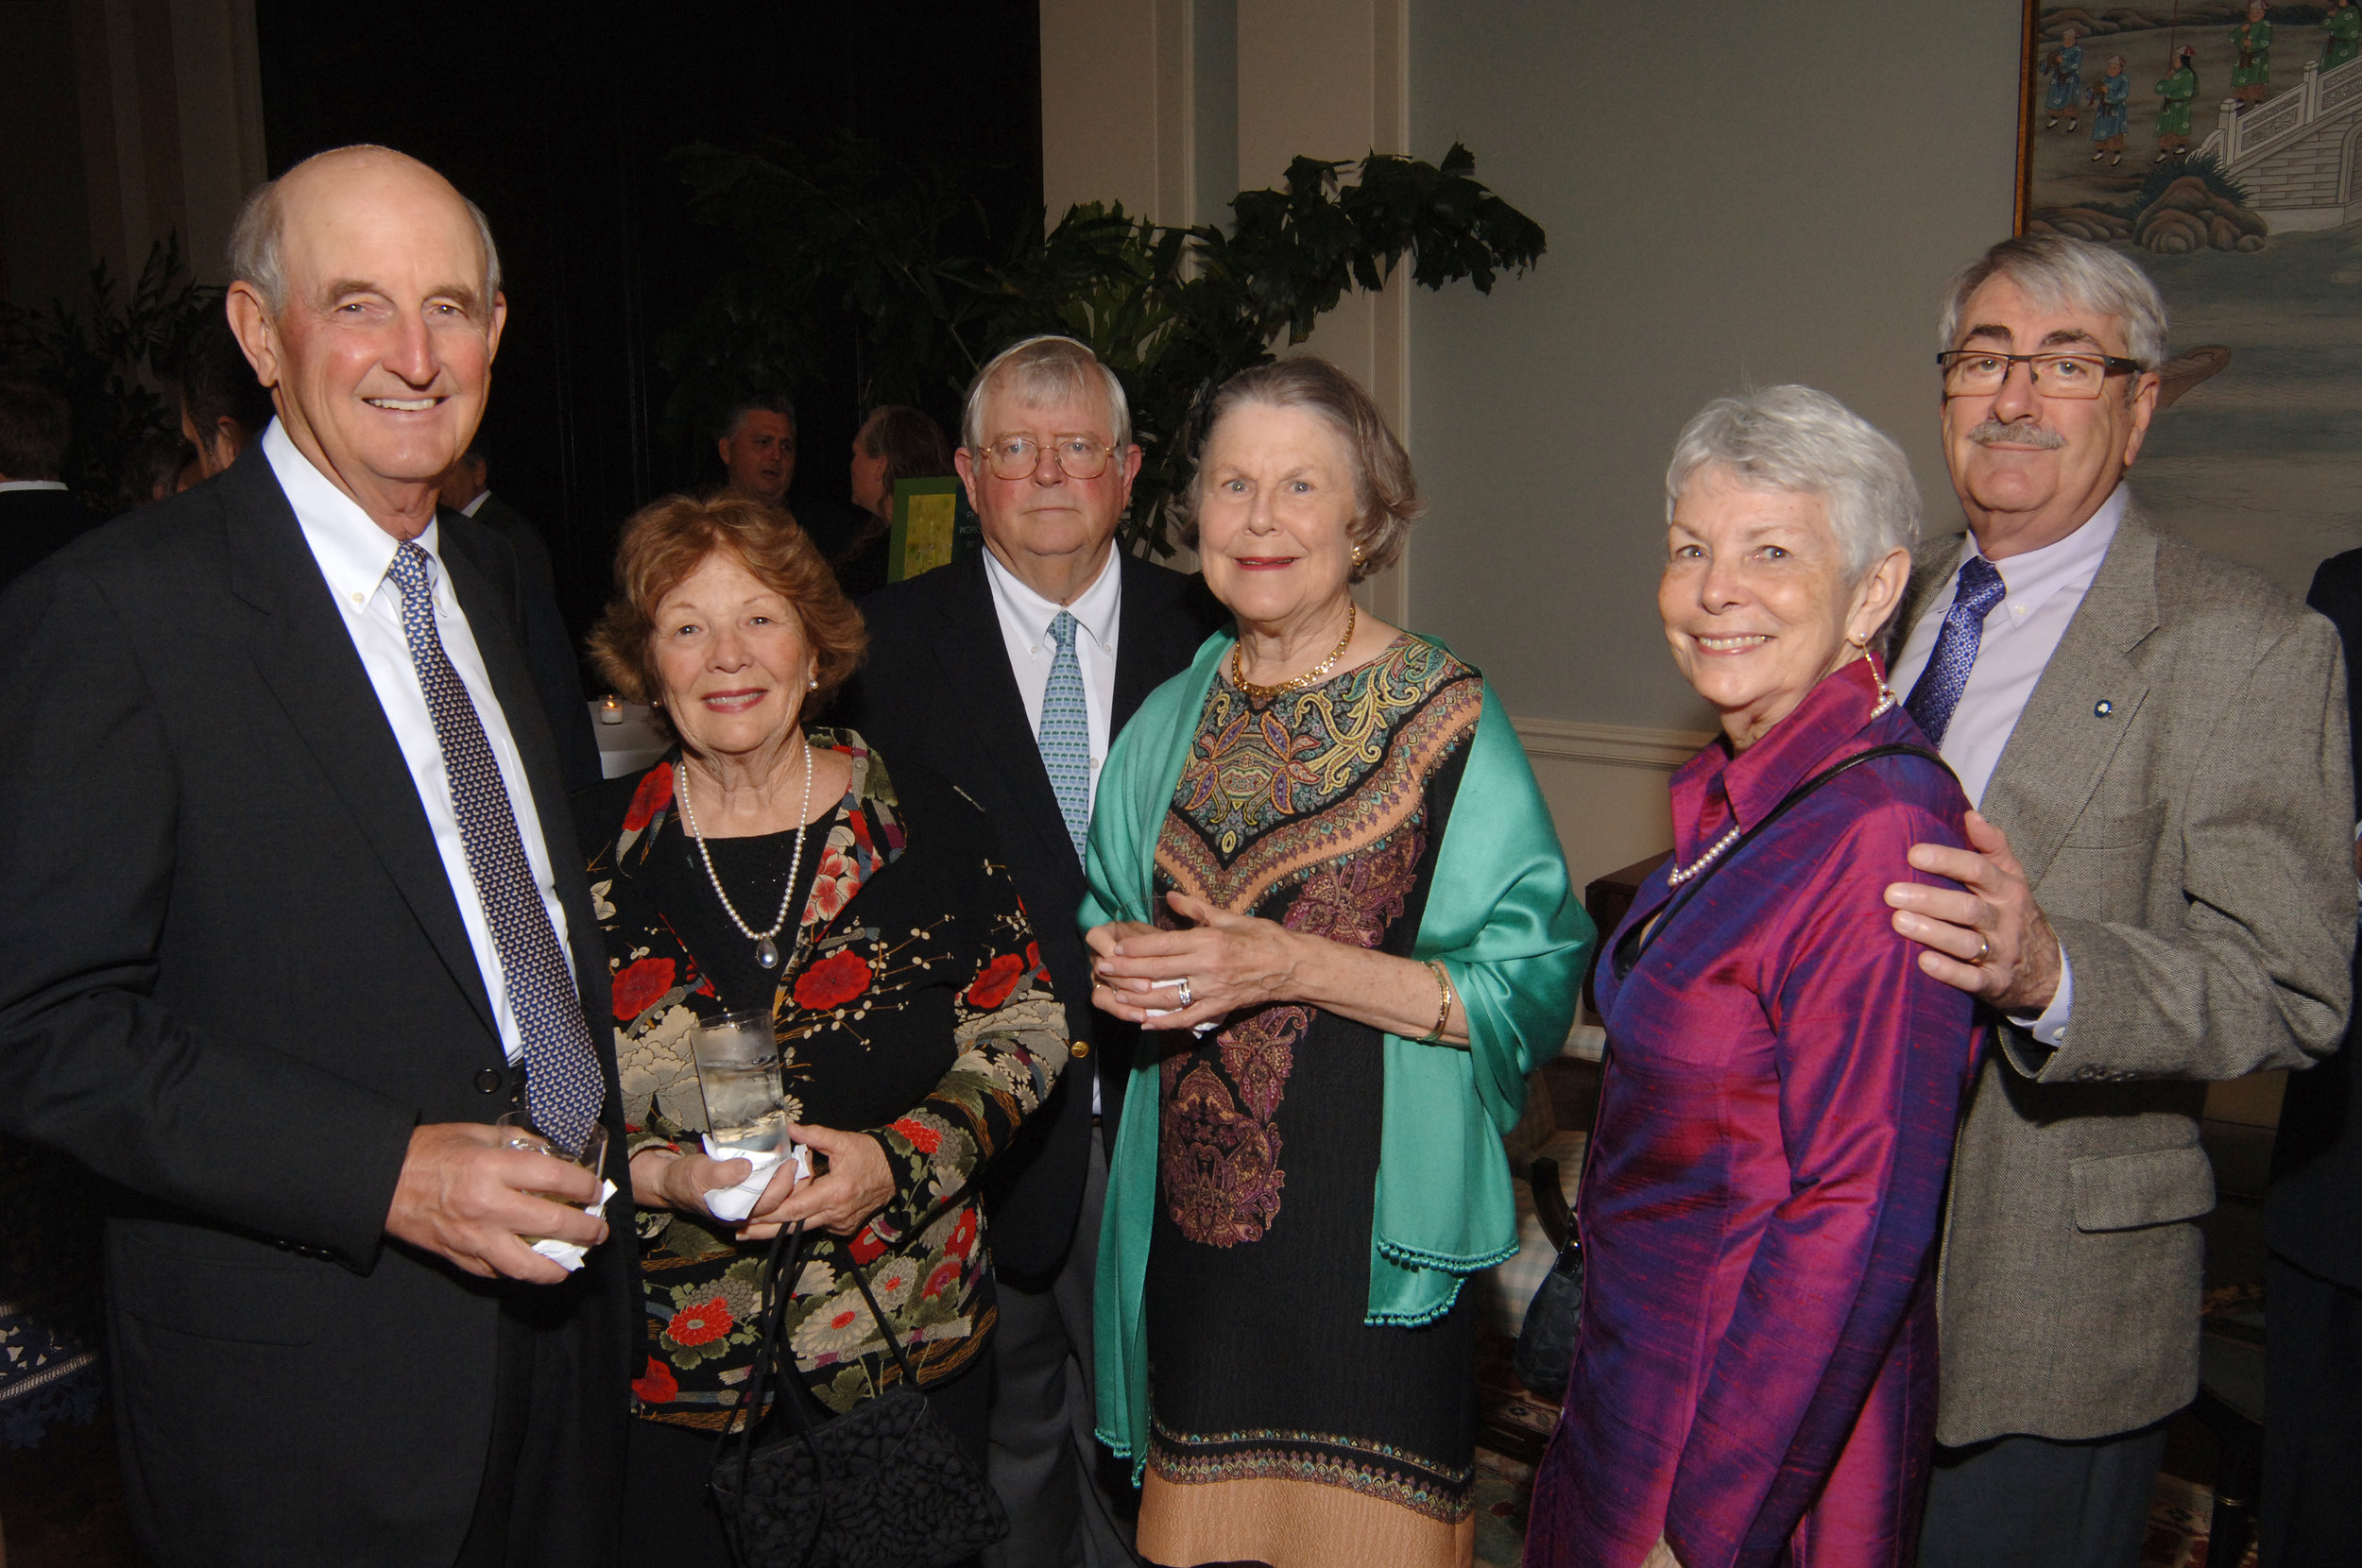 KPCGala_Ben and Mary Gwen Hulsey, Tom and Ann Kelsey, Jonni and Skip Almoney_Tom DuBrock photo.JPG